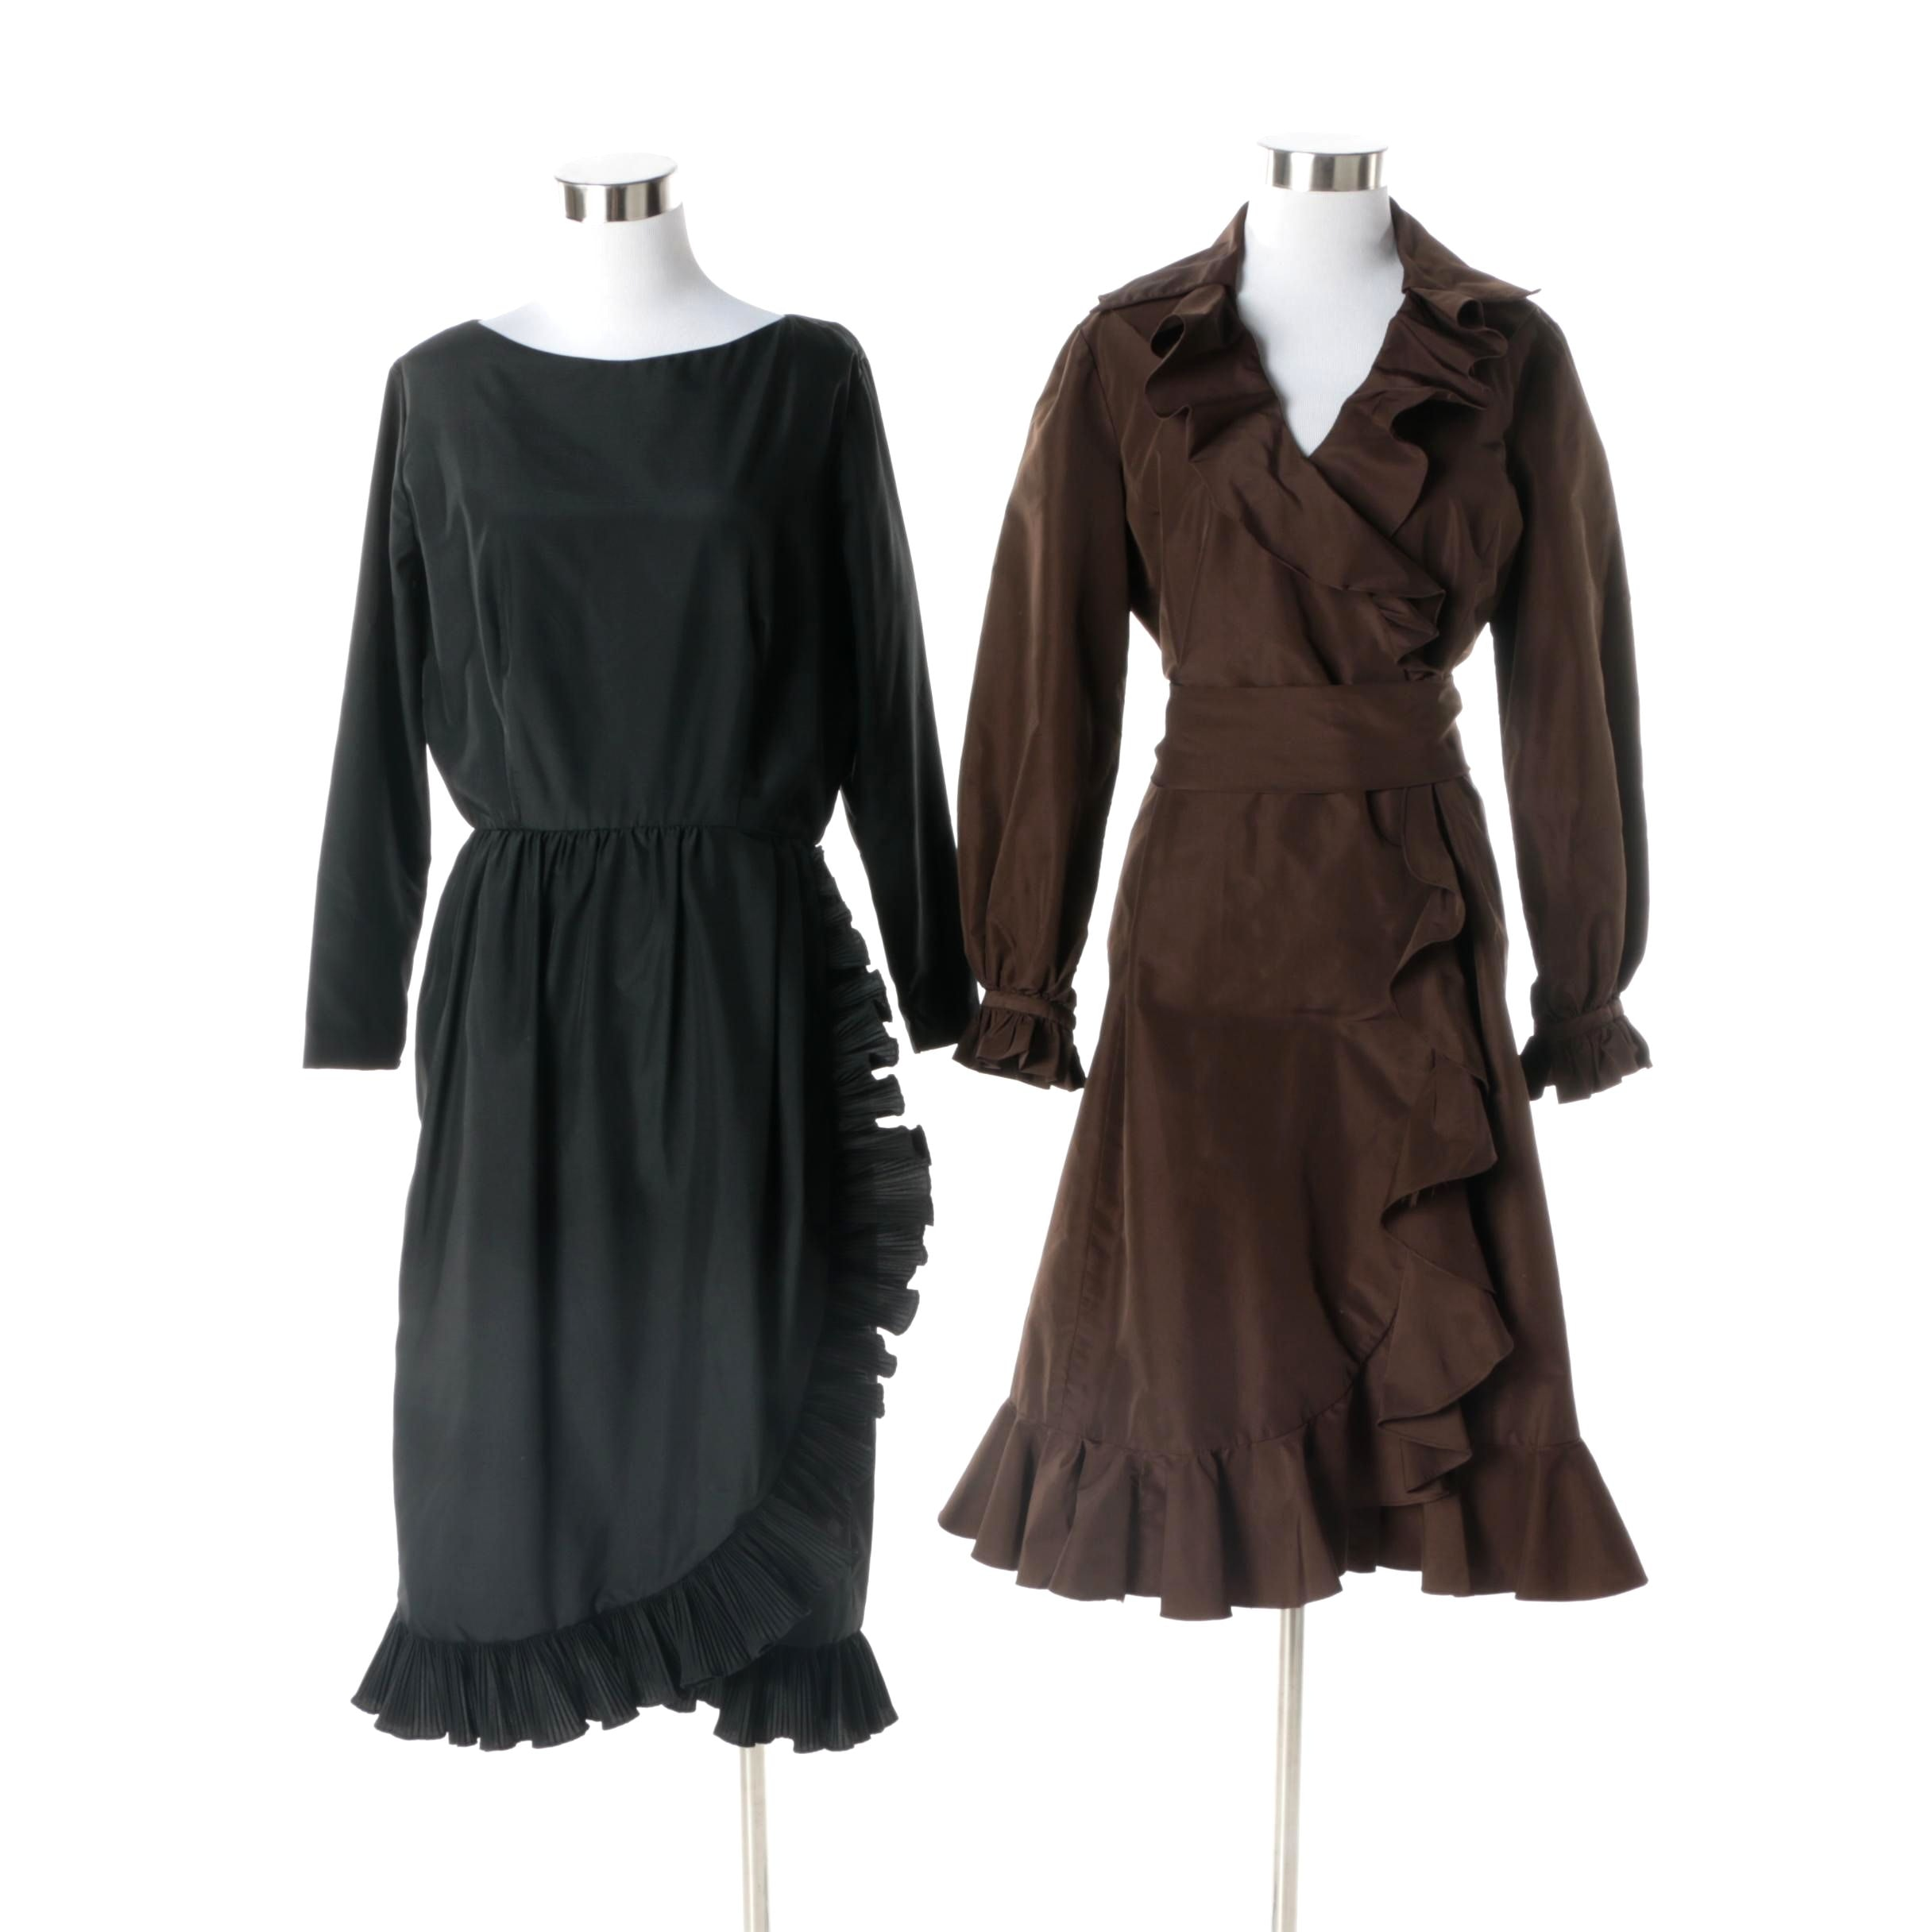 1980s Vintage Victor Costa Black Ruffle Hem Dress and Brown Cocktail Dress